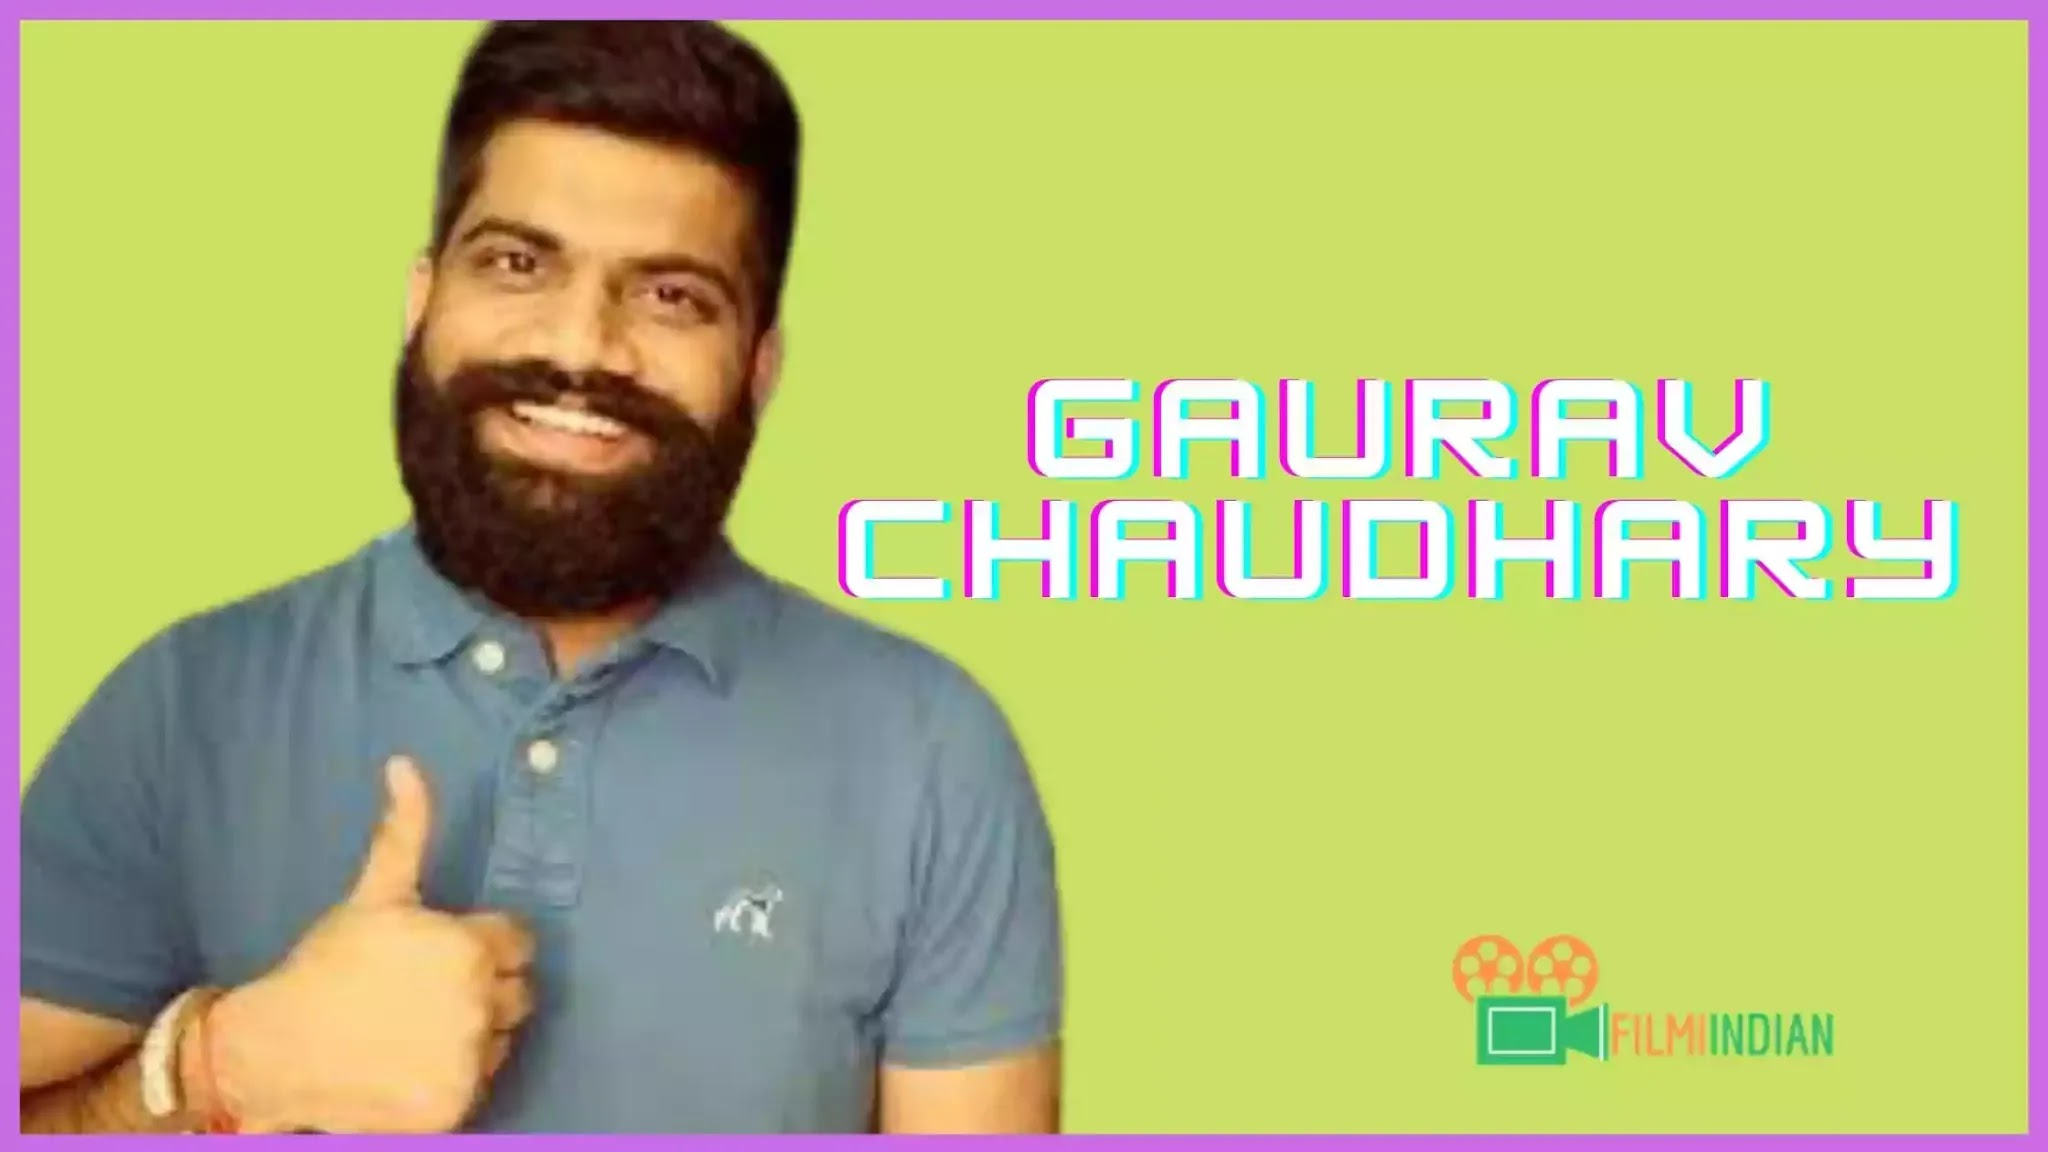 Gaurav Chaudhary : Technical Guruji : Best Biography (2020)